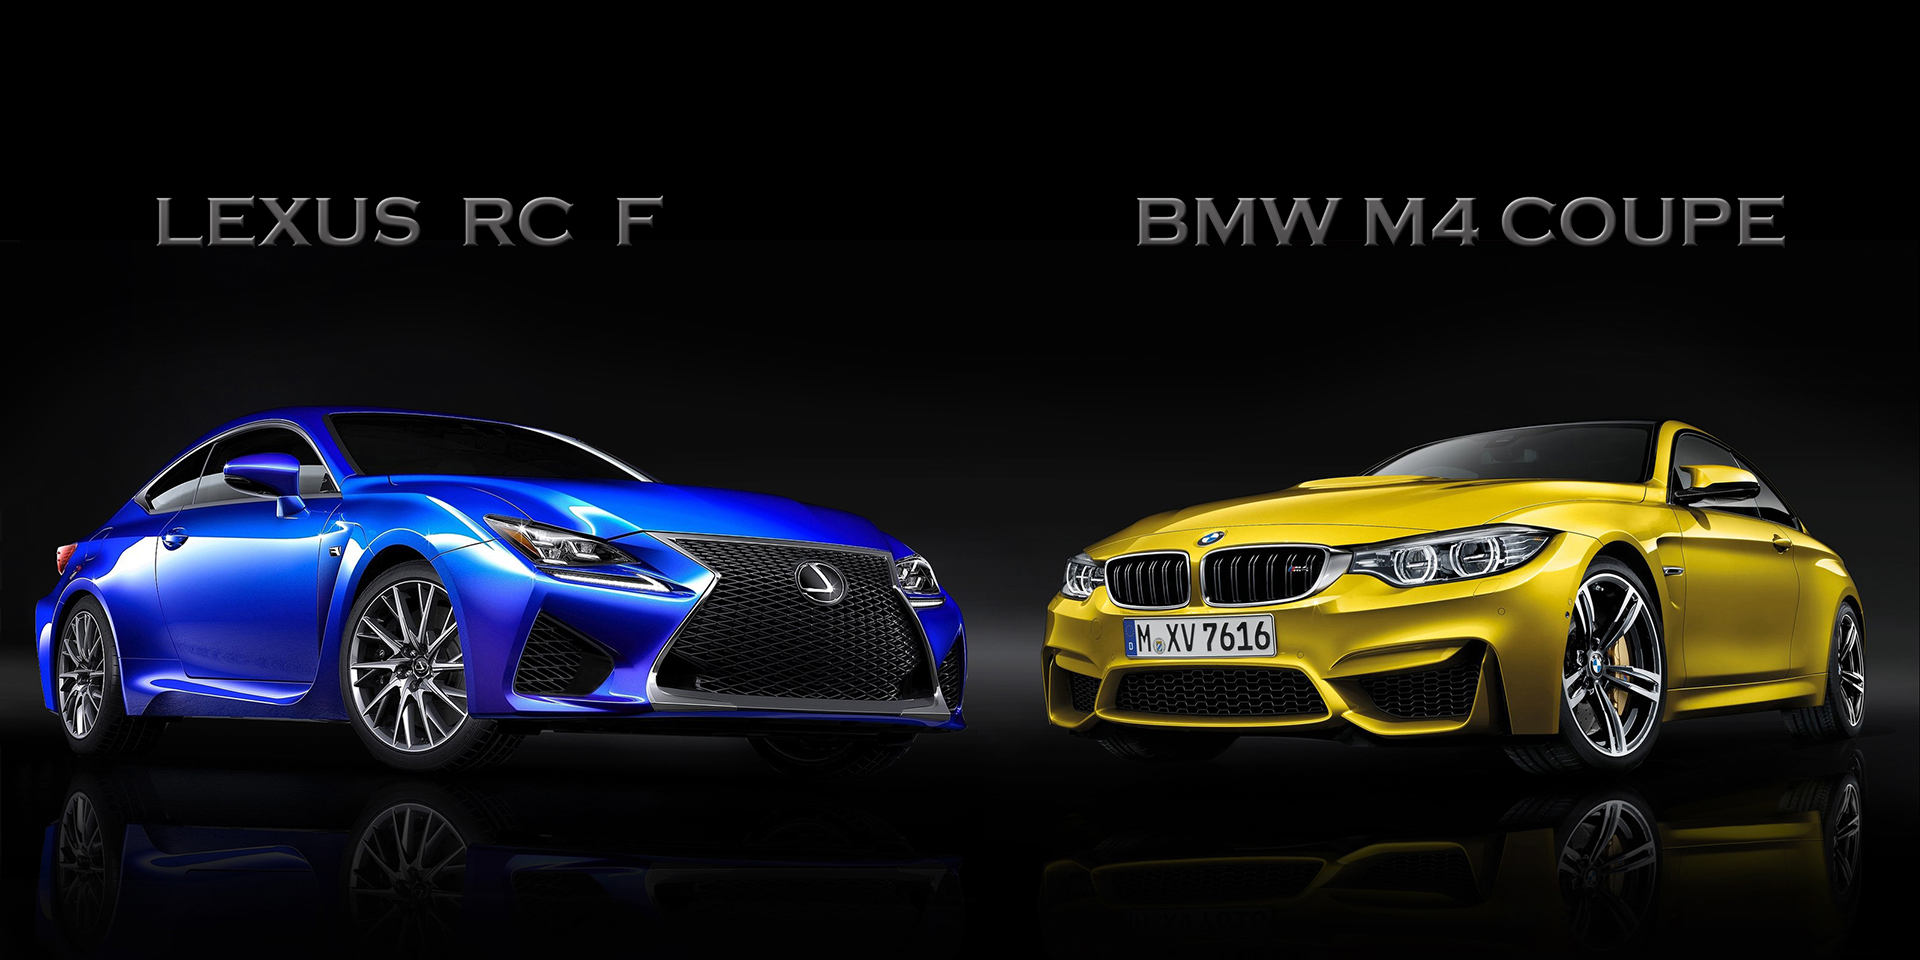 2015 lexus rc f vs bmw m4 coupe picture top speed. Black Bedroom Furniture Sets. Home Design Ideas